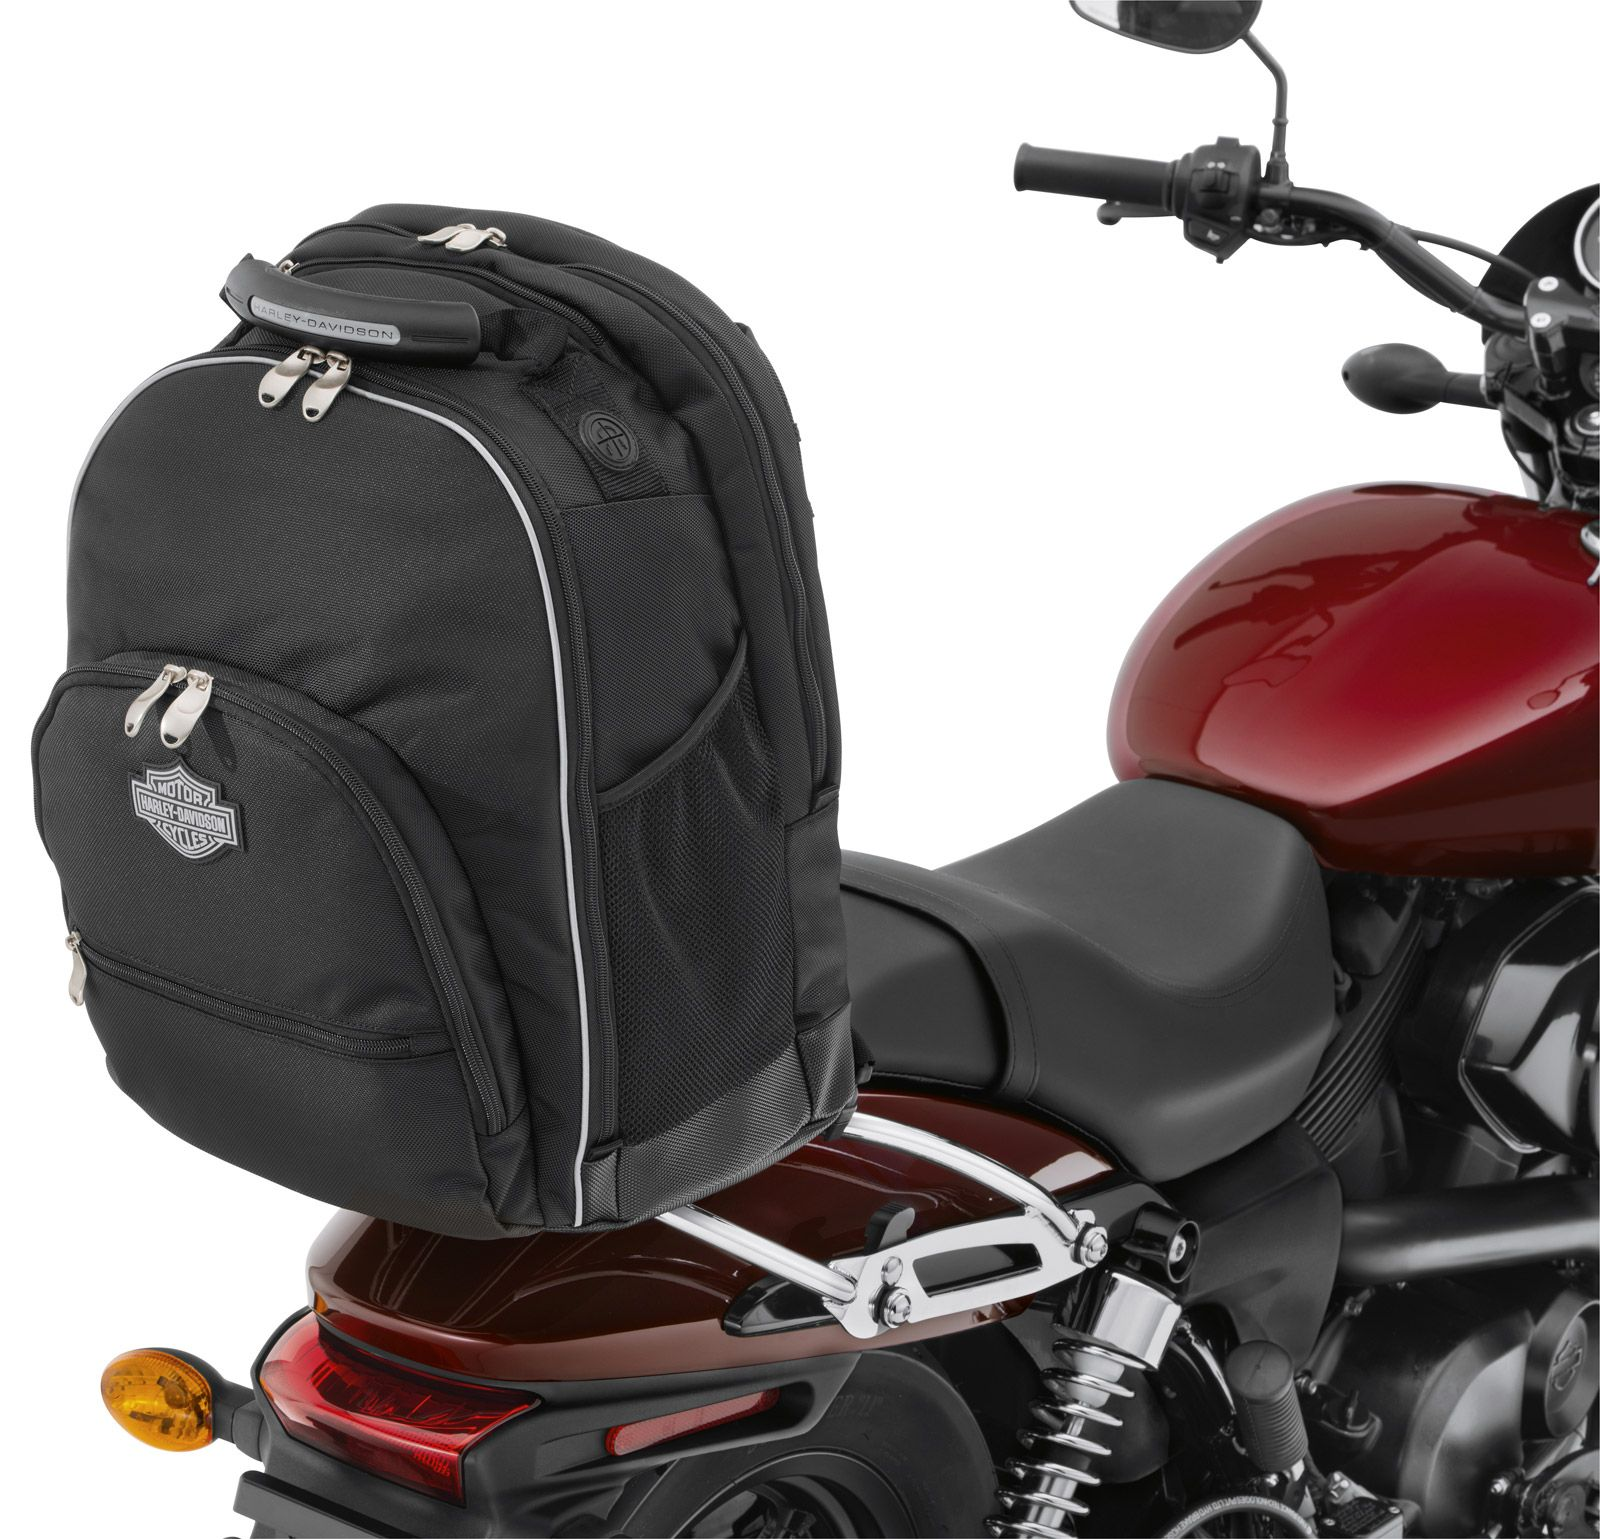 93300007 sissy bar backpack at thunderbike shop. Black Bedroom Furniture Sets. Home Design Ideas